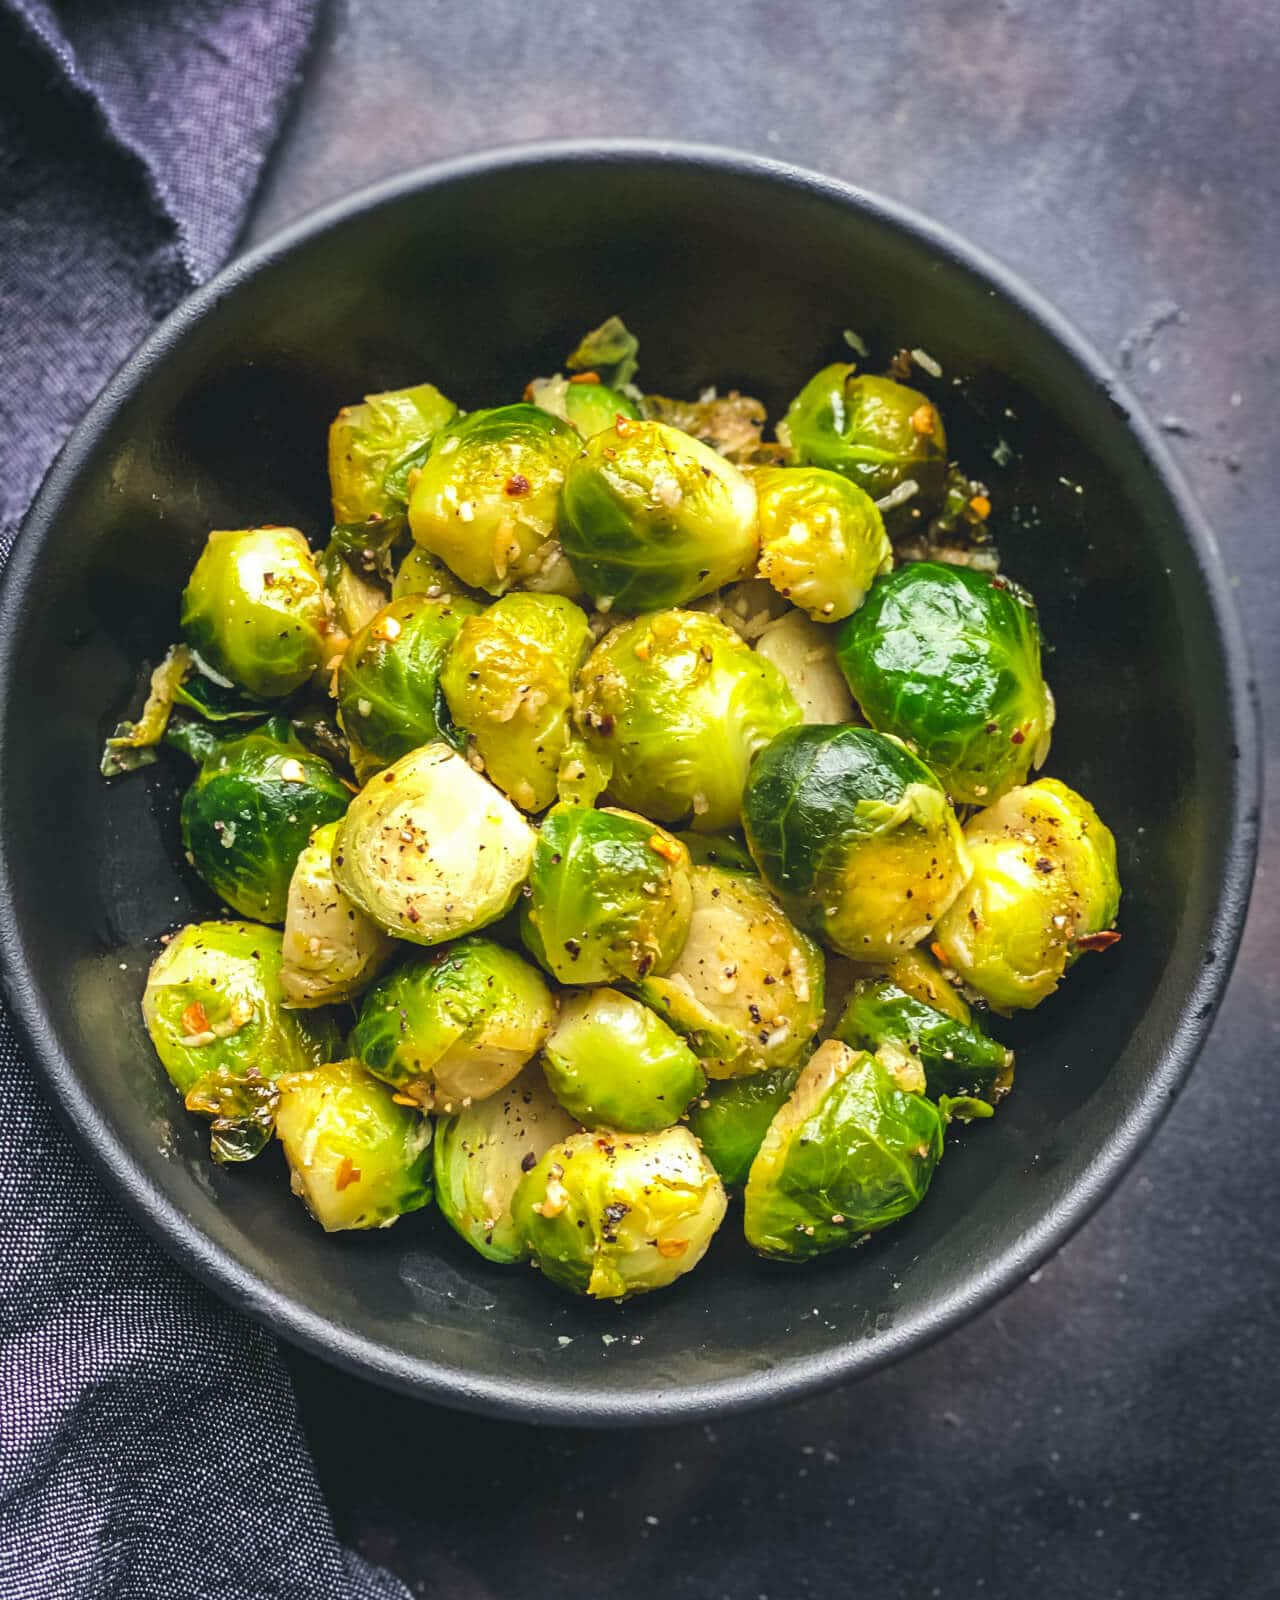 A black bowl with bright green steamed Brussel Sprouts on a grey counter with a grey blue towel to the left.